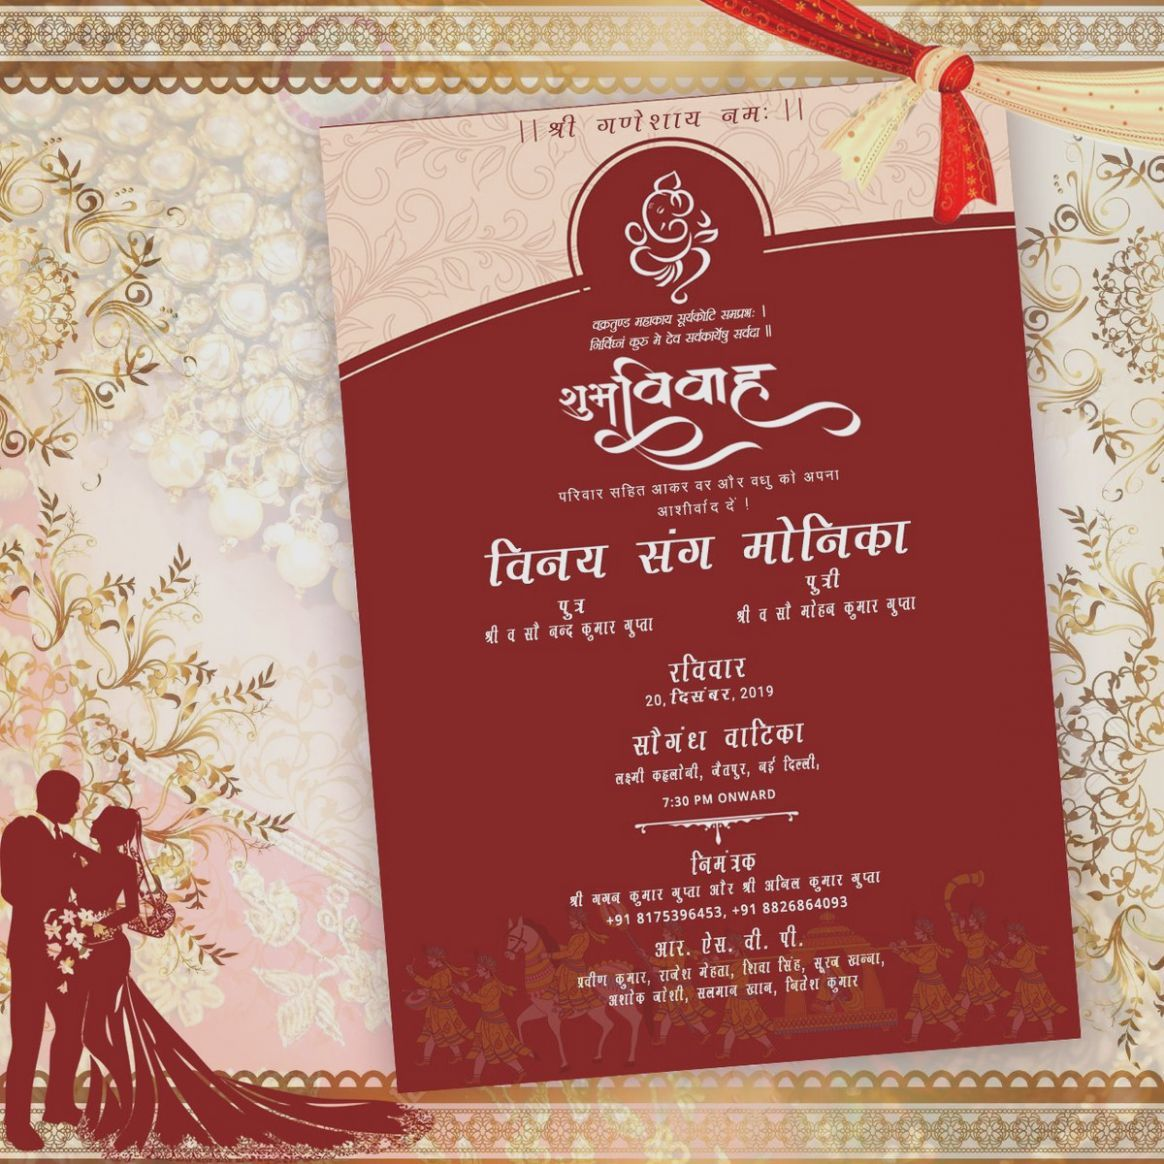 8 Marriage Card Nepali Marriage Cards Wedding Invitation Cards Wedding Cards